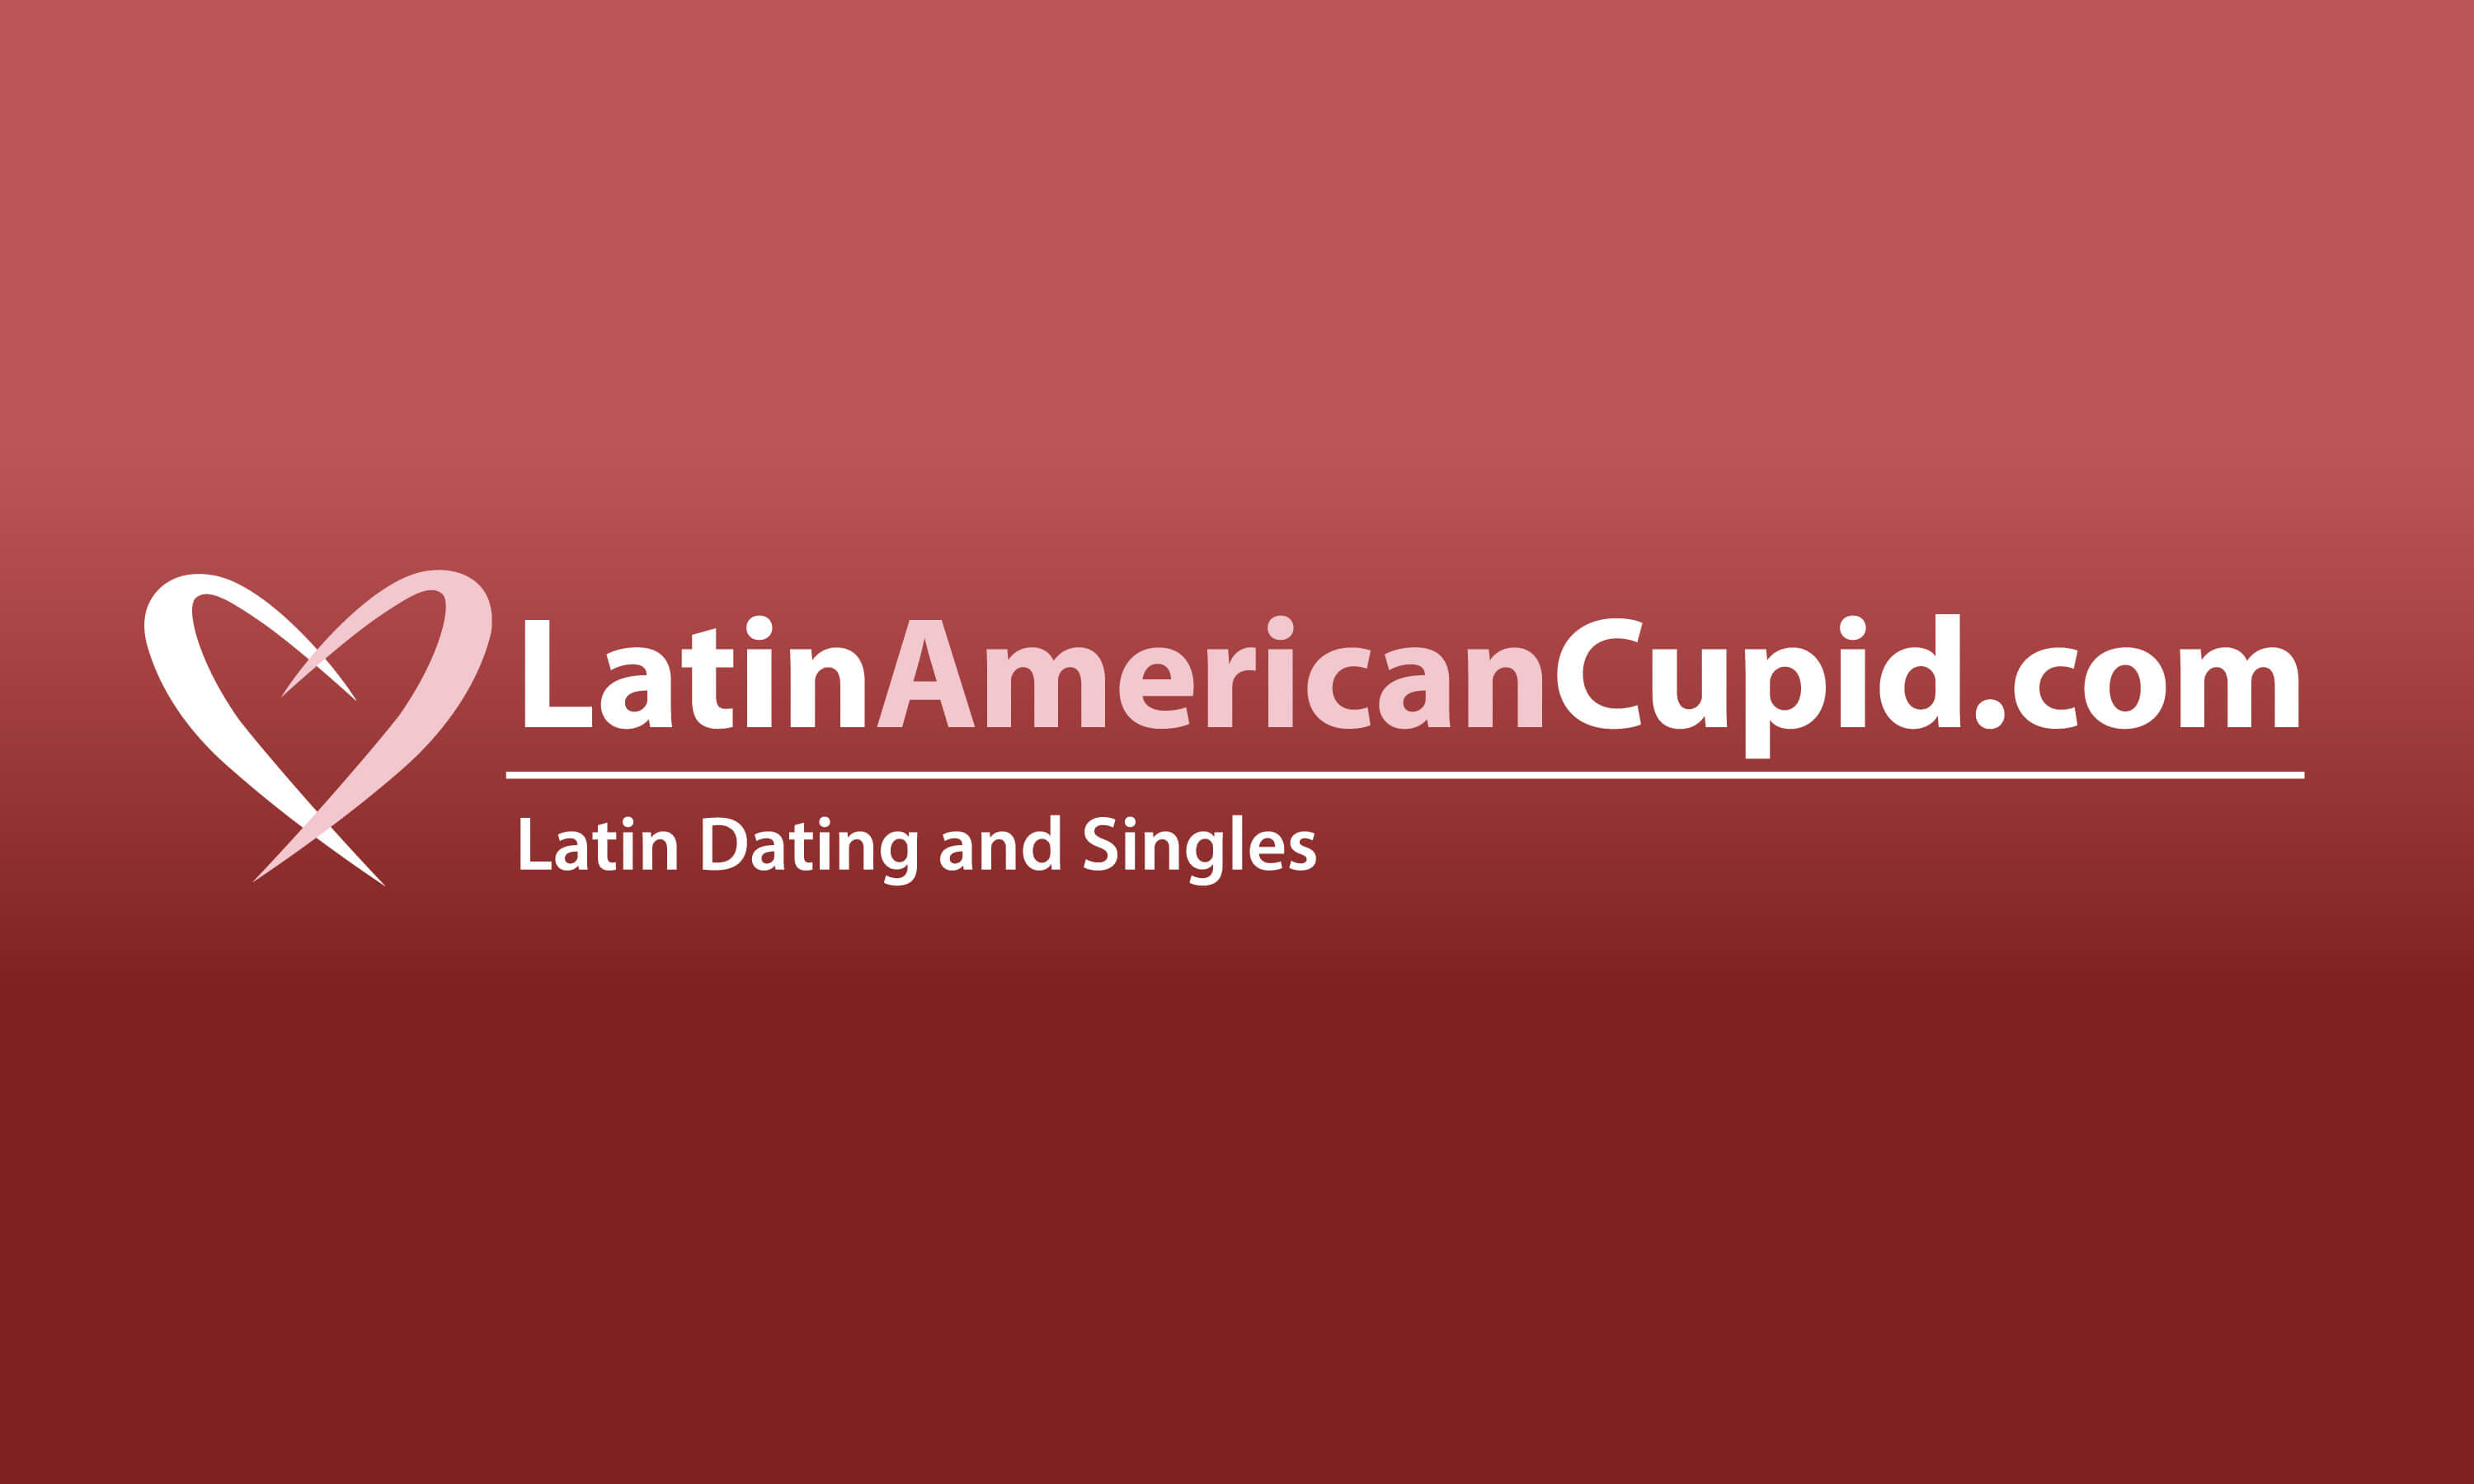 Latin Cupid dating